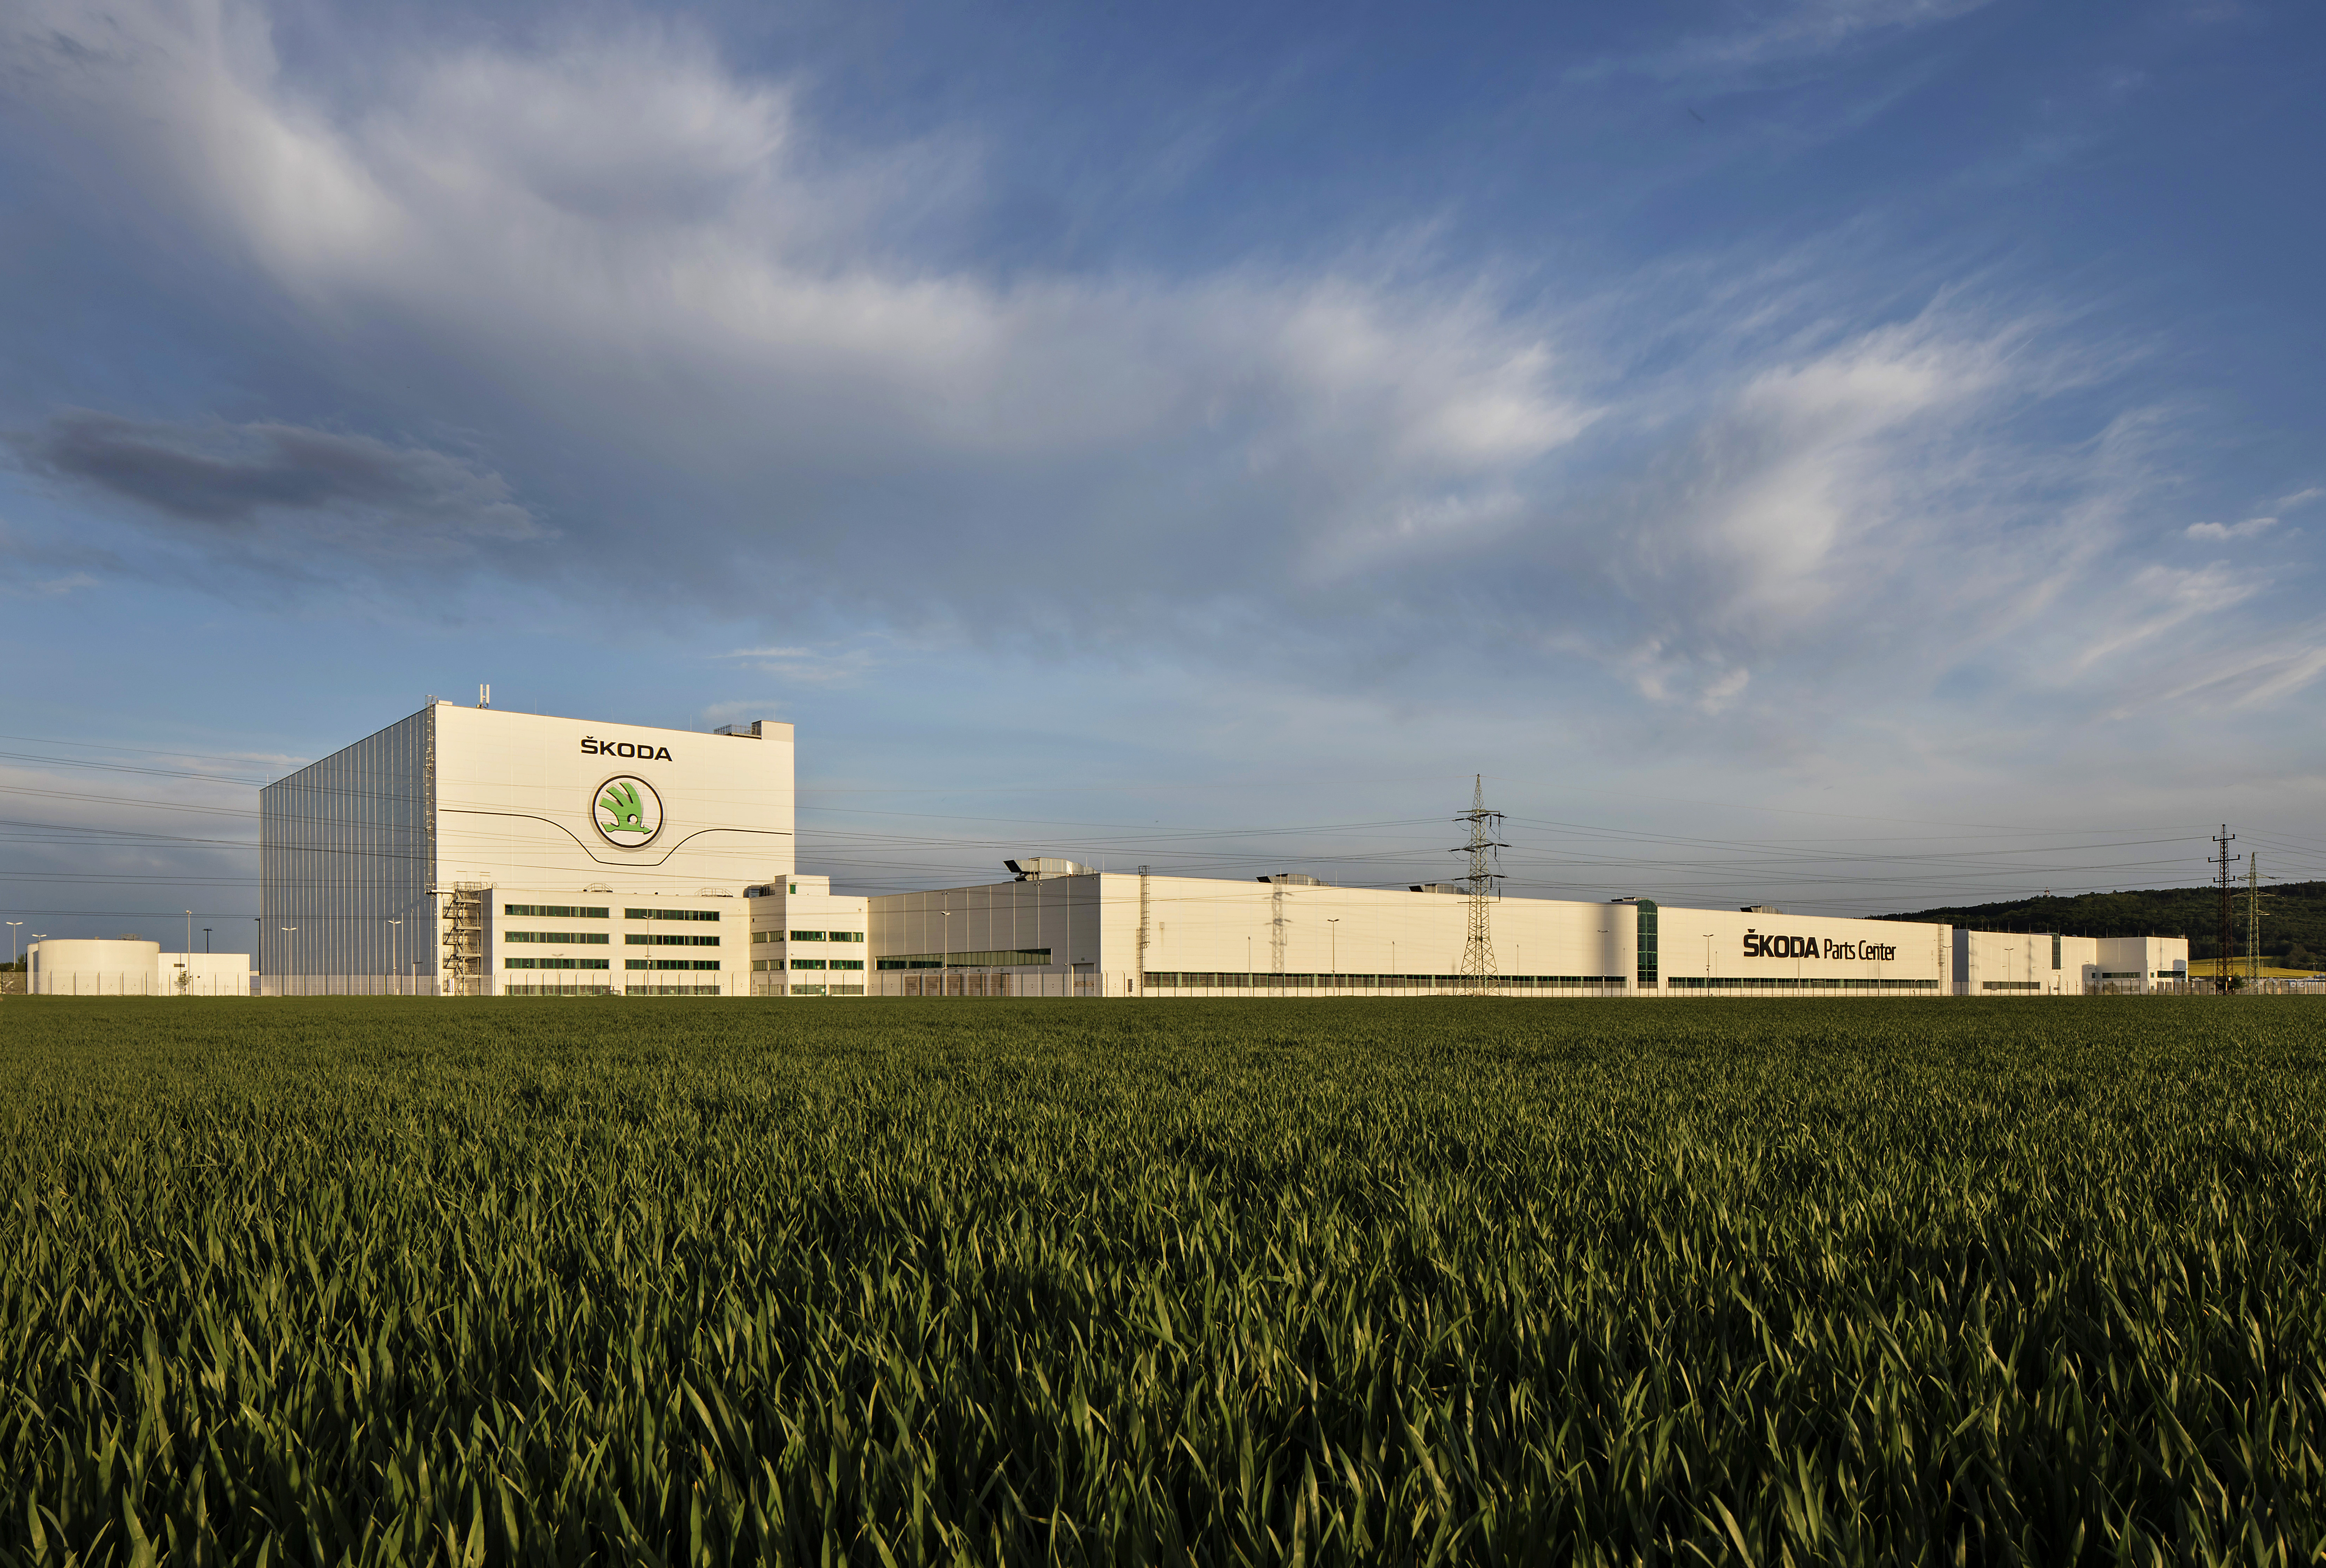 SKODA Parts Centre in Mladá Boleslav ensuring fast and reliable supply of genuine parts for 20 years - Image 2